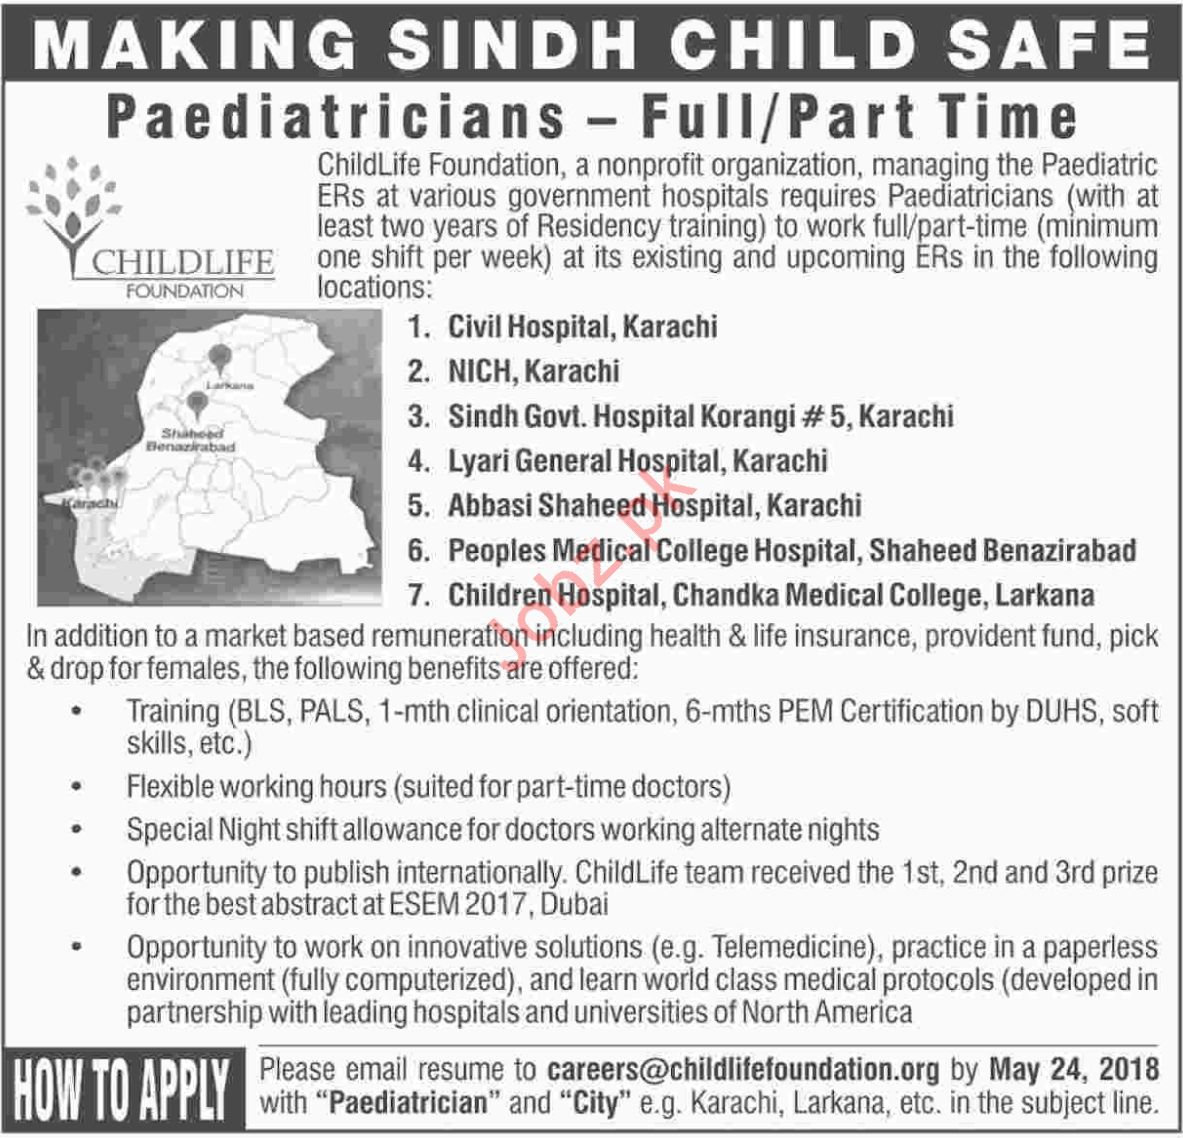 Pediatricians required at Child life Foundation